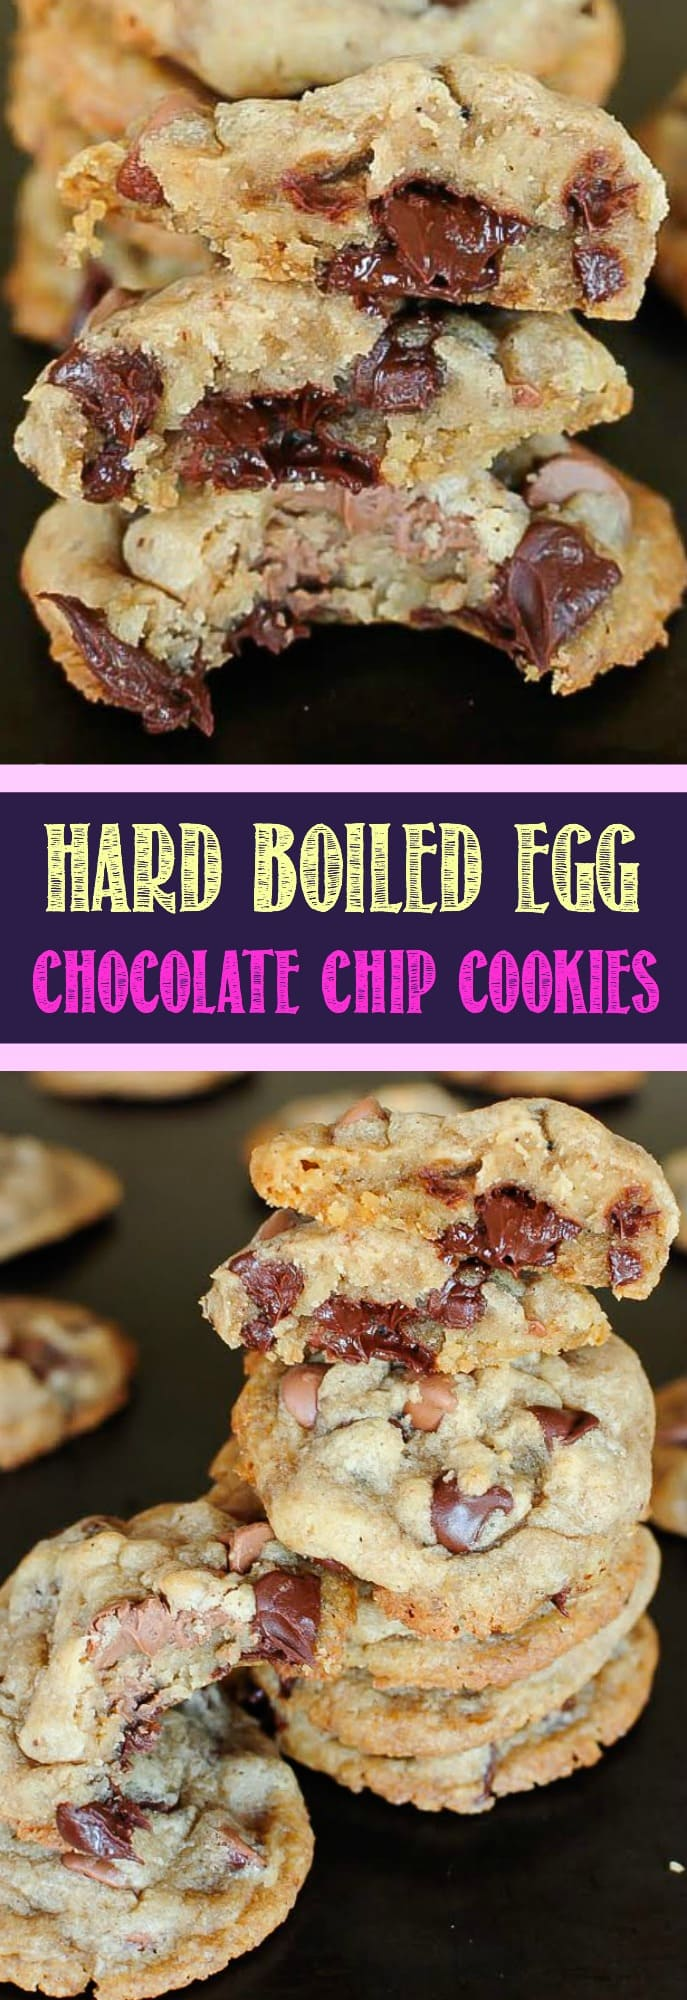 Hard Boiled Egg Chocolate Chip Cookies sound crazy, but honestly these are one of the BEST cookies I have ever eaten! These are an incredibly delicious way to use up all those extra Easter Eggs!